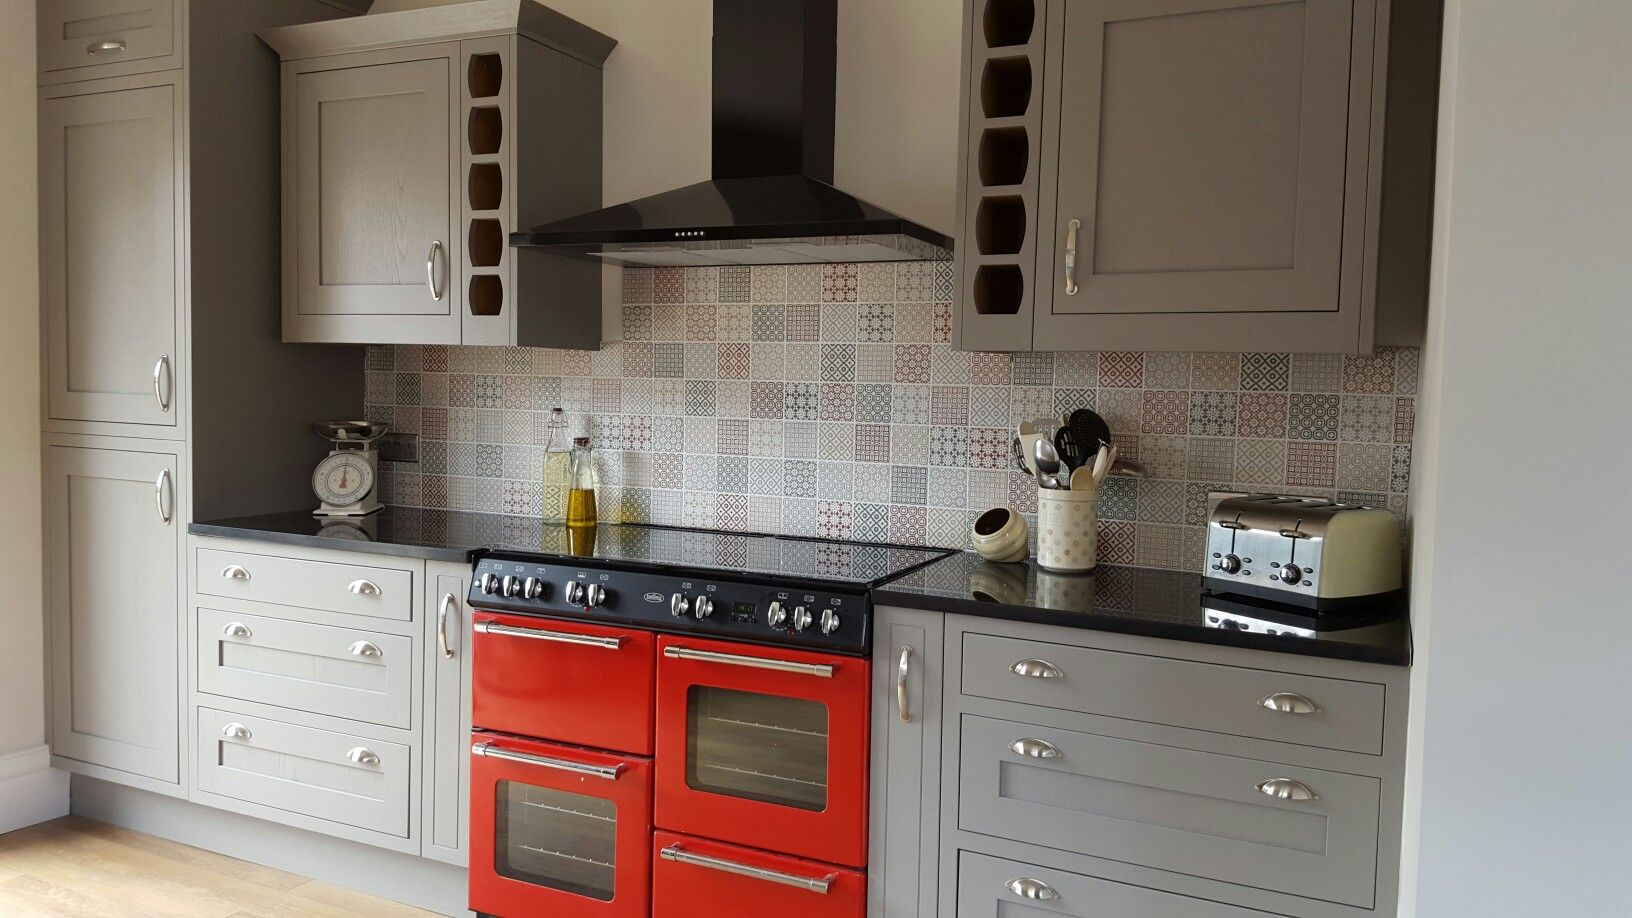 Our kitchen after, B&Q Carisbrooke taupe framed units and